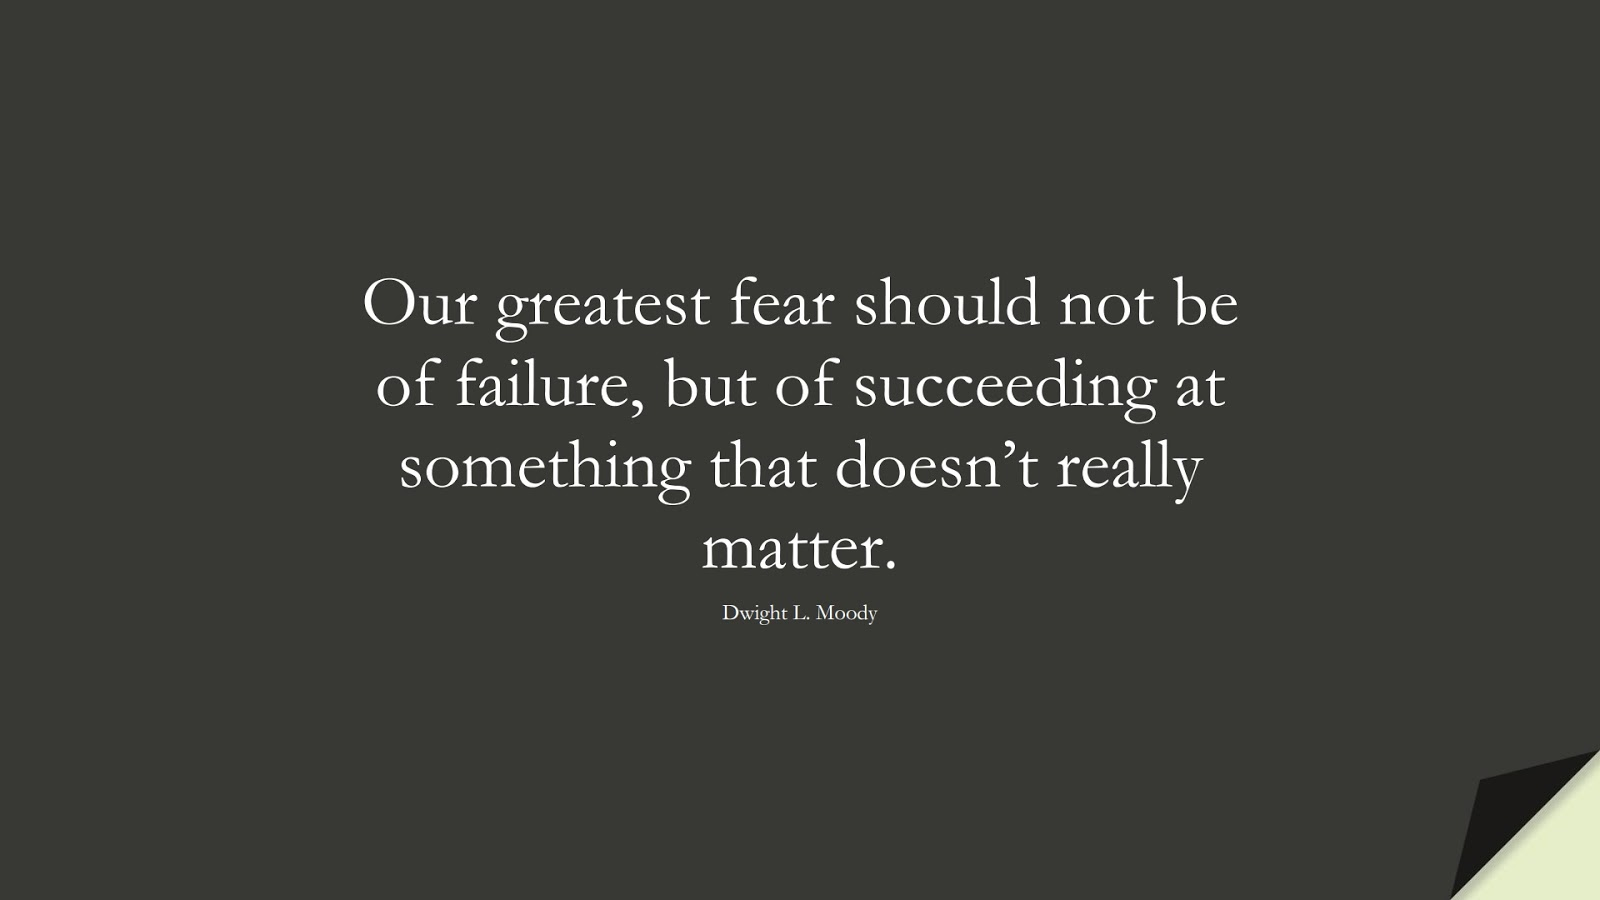 Our greatest fear should not be of failure, but of succeeding at something that doesn't really matter. (Dwight L. Moody);  #FearQuotes